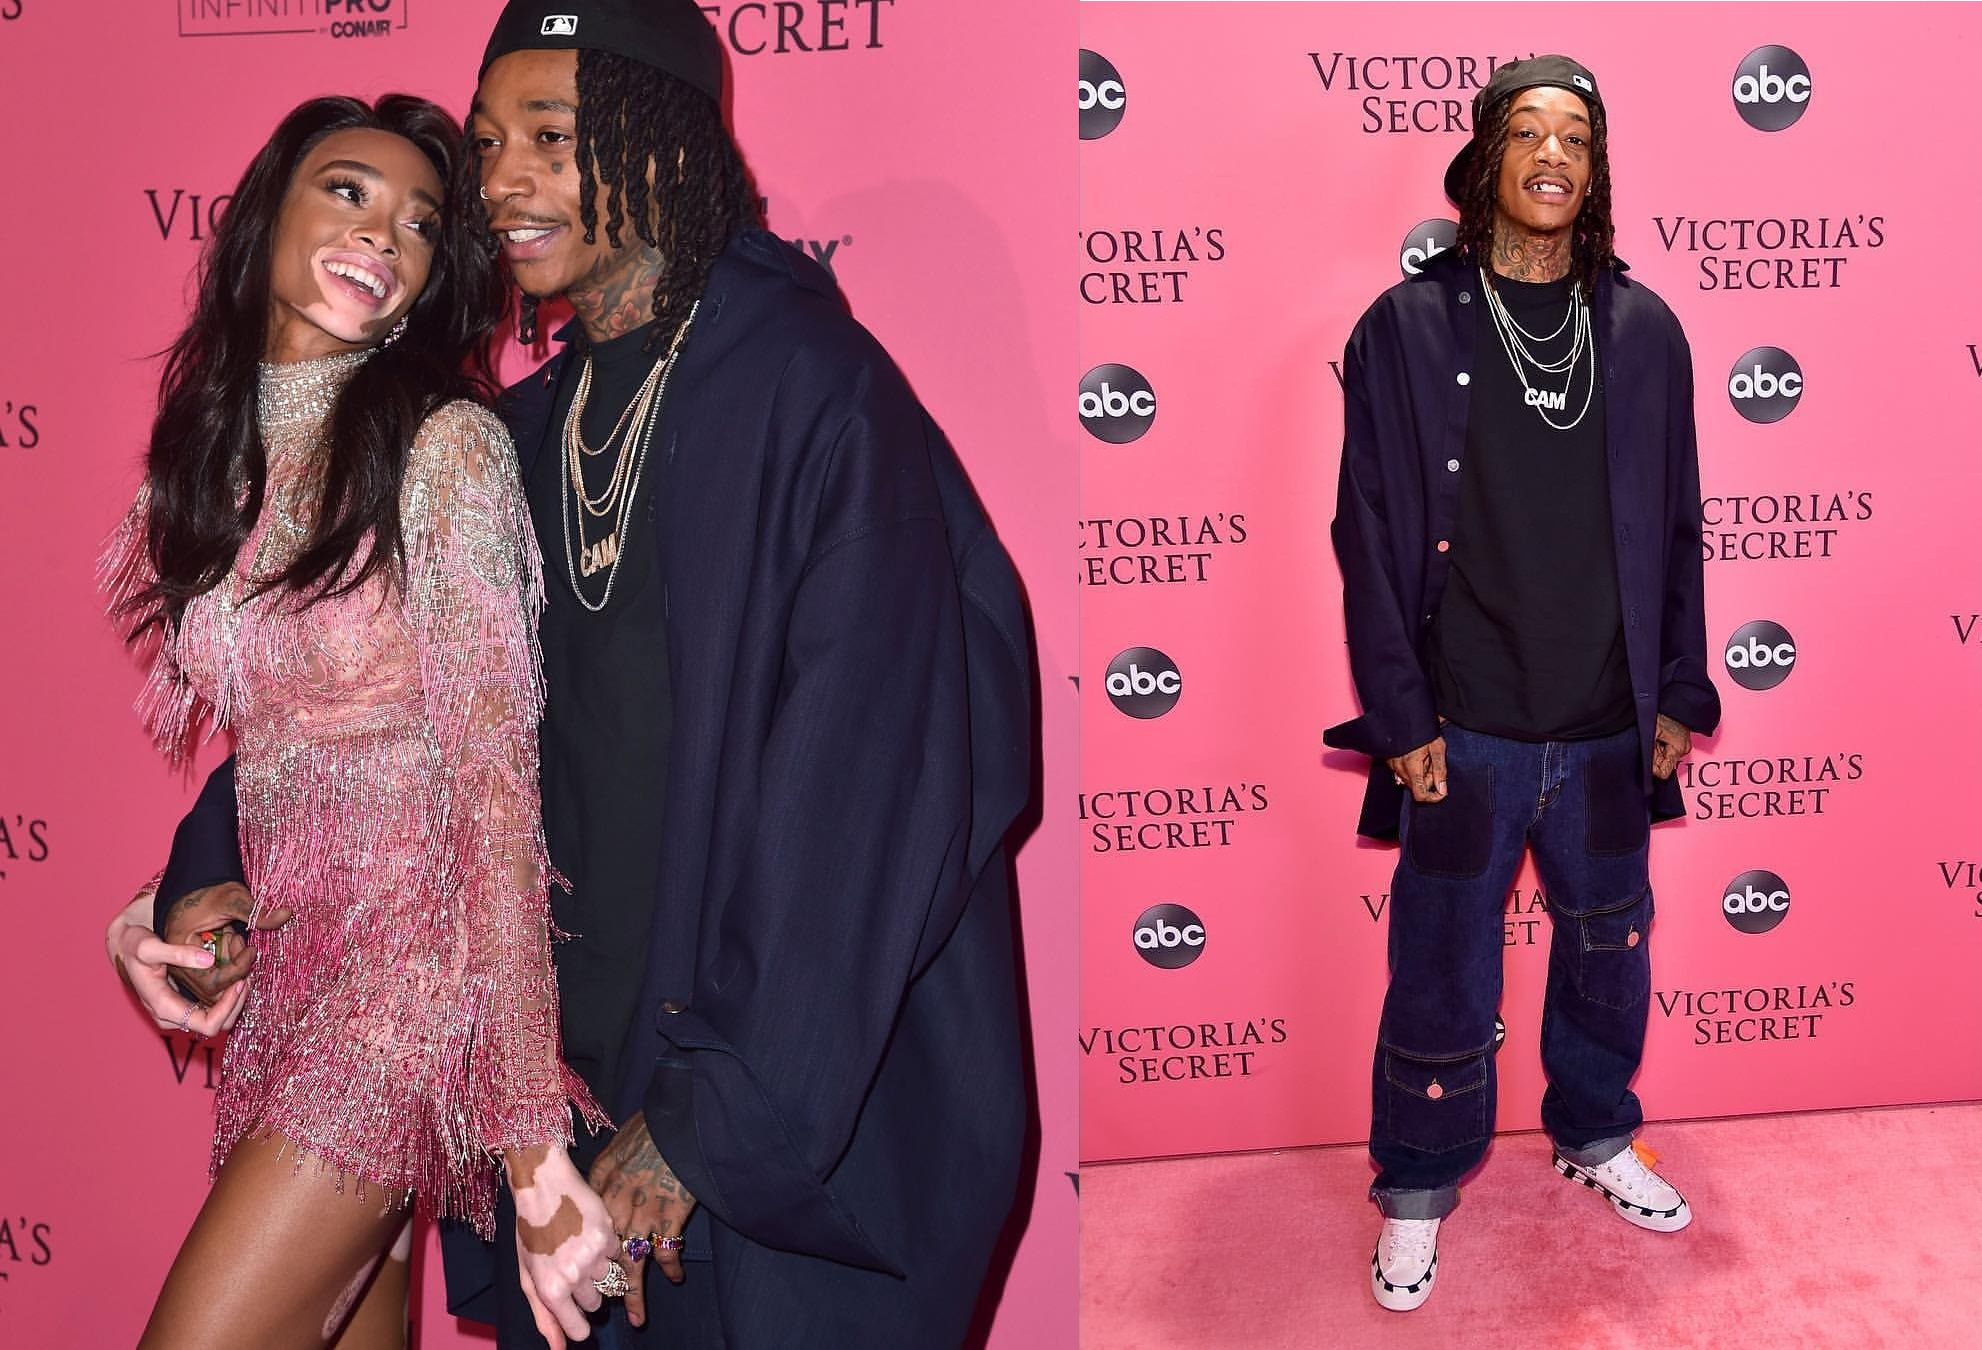 SPOTTED: Wiz Khalifa and Winnie Harlow Sport Off-White™, Dundas and More